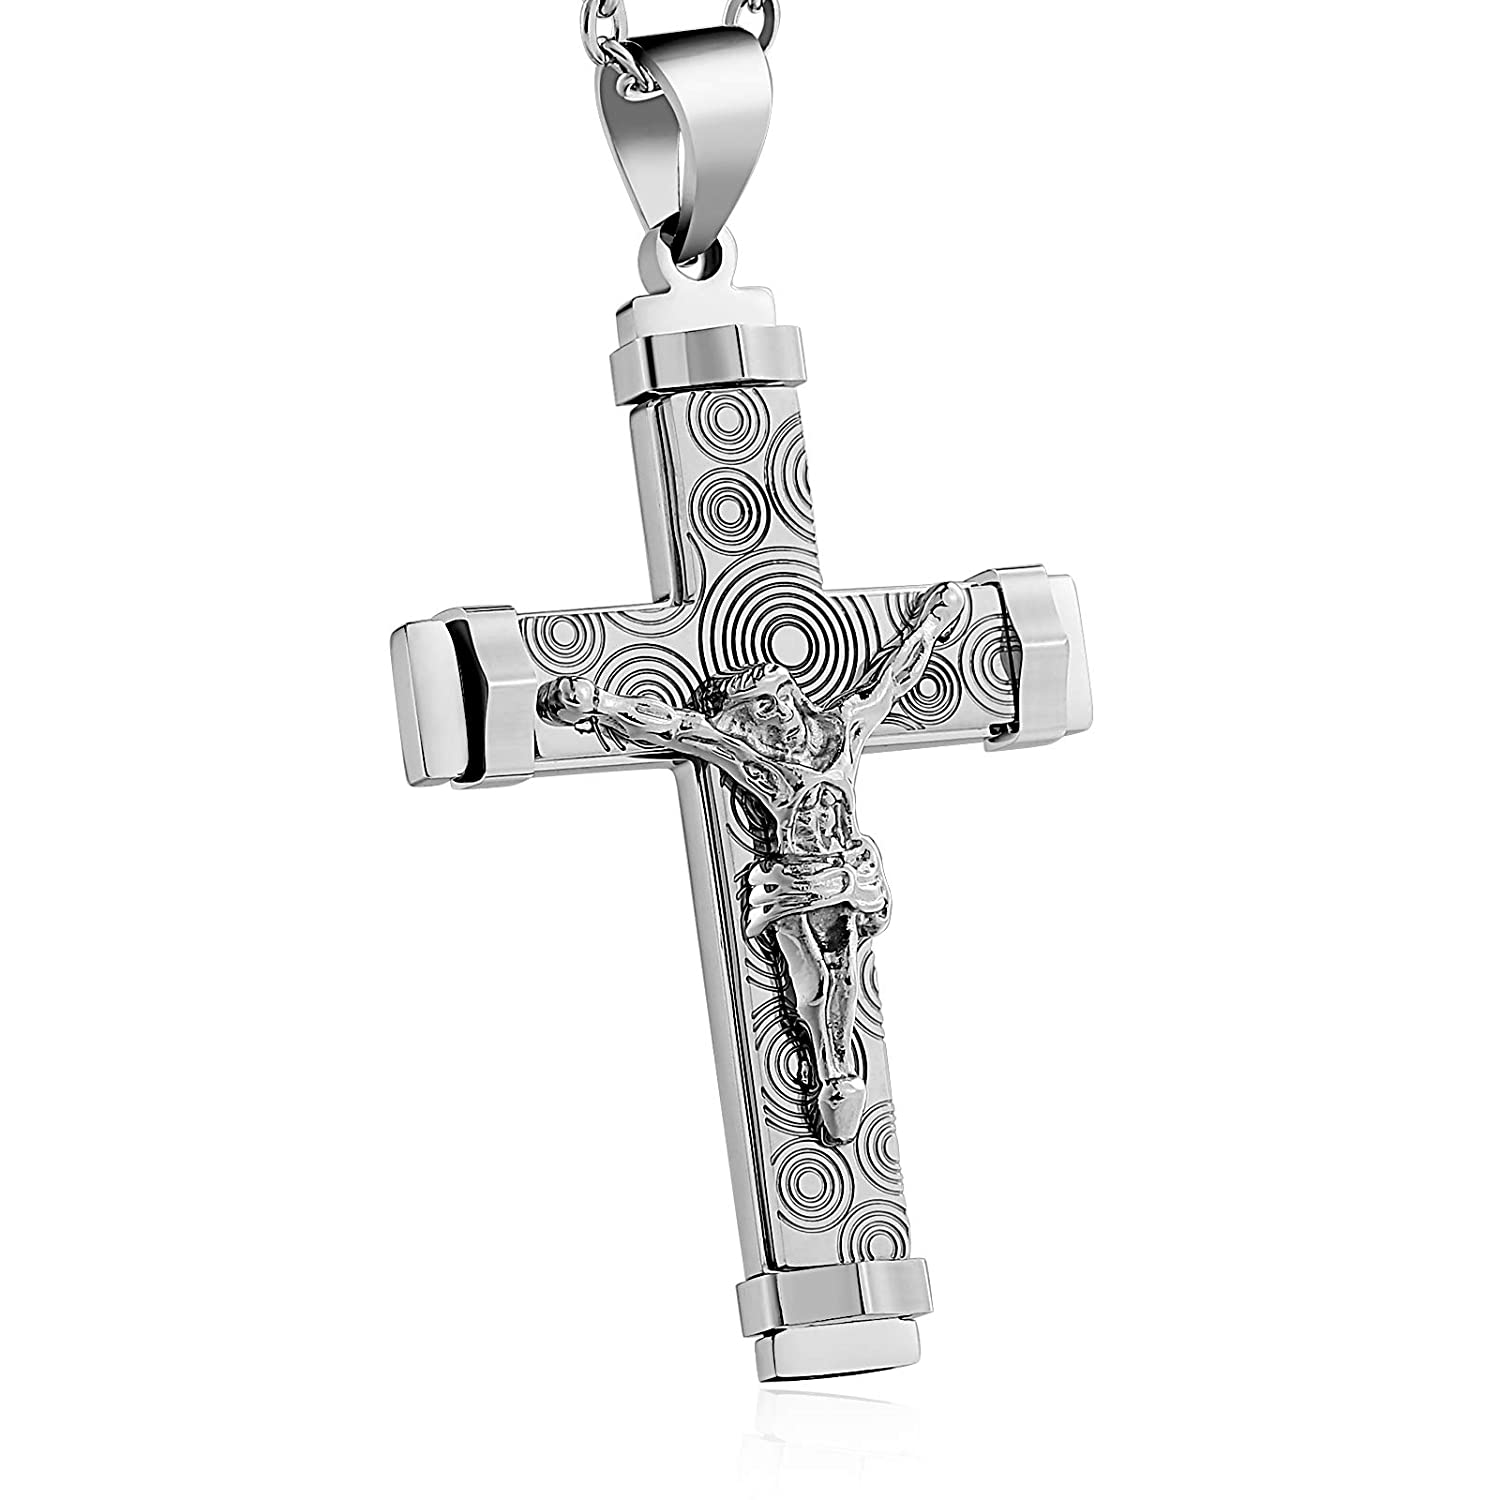 MoAndy Stainless Steel Jewelry Necklace Chain Cross DN137